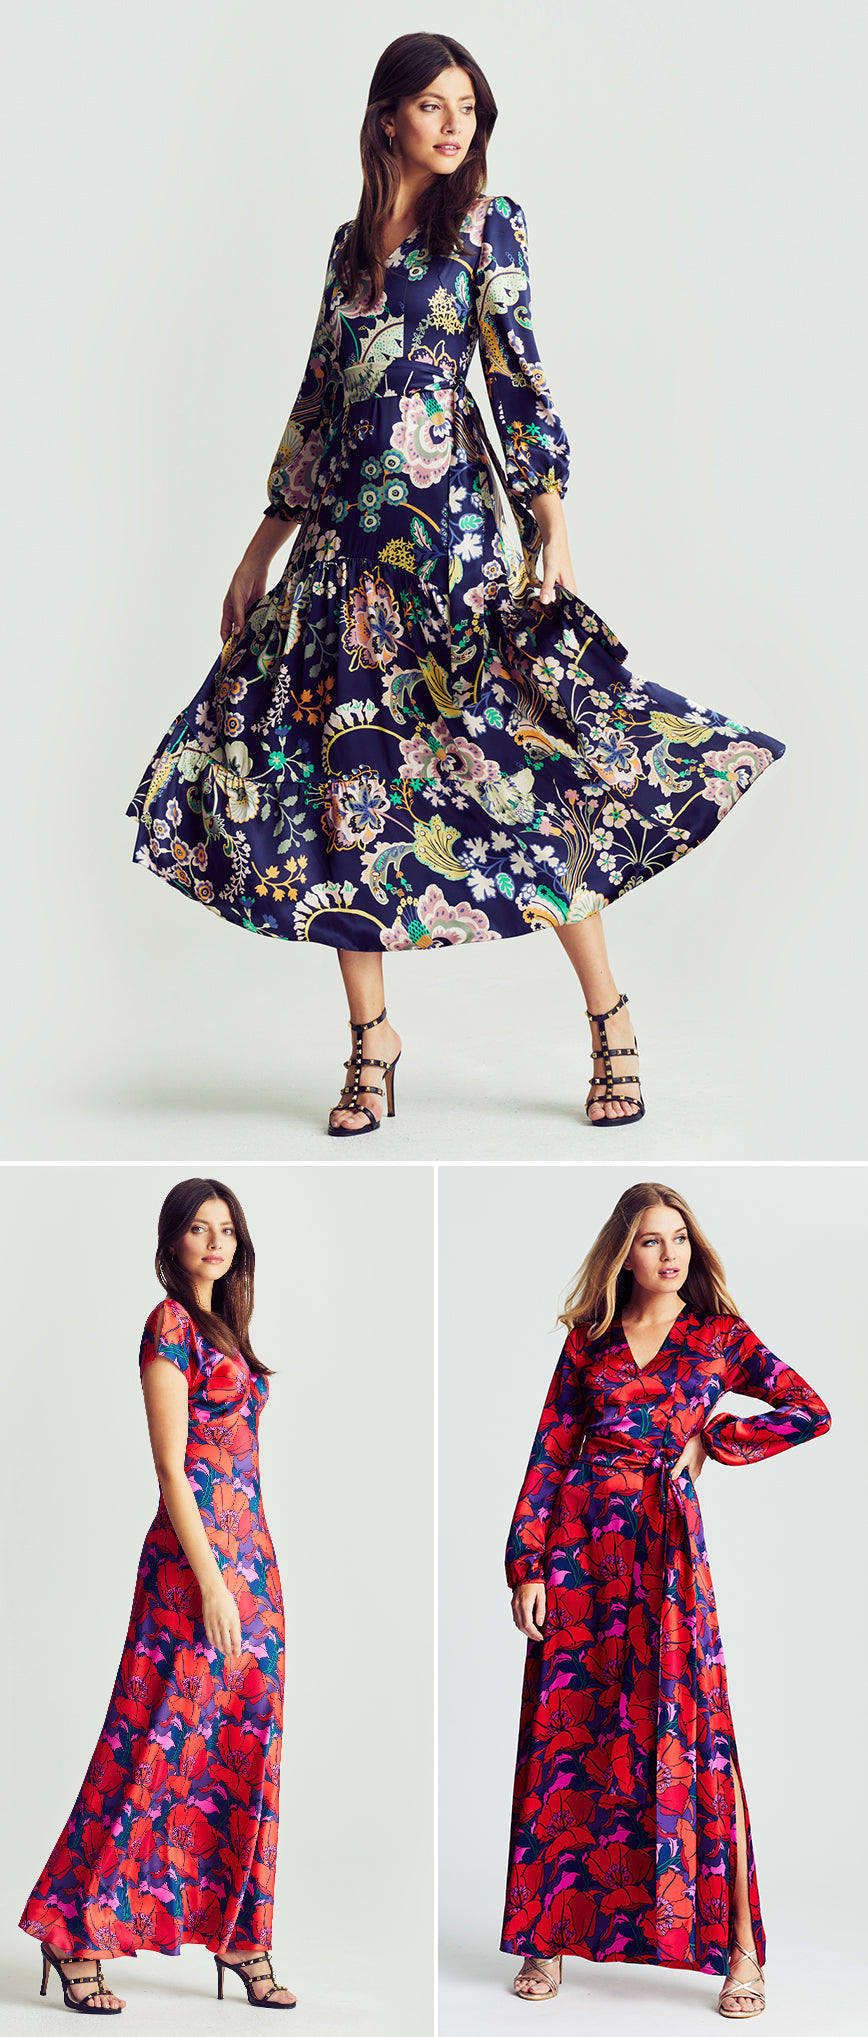 ridleylondon-statement-printed-floral-silk-maxi-dress-christmas-party-blog